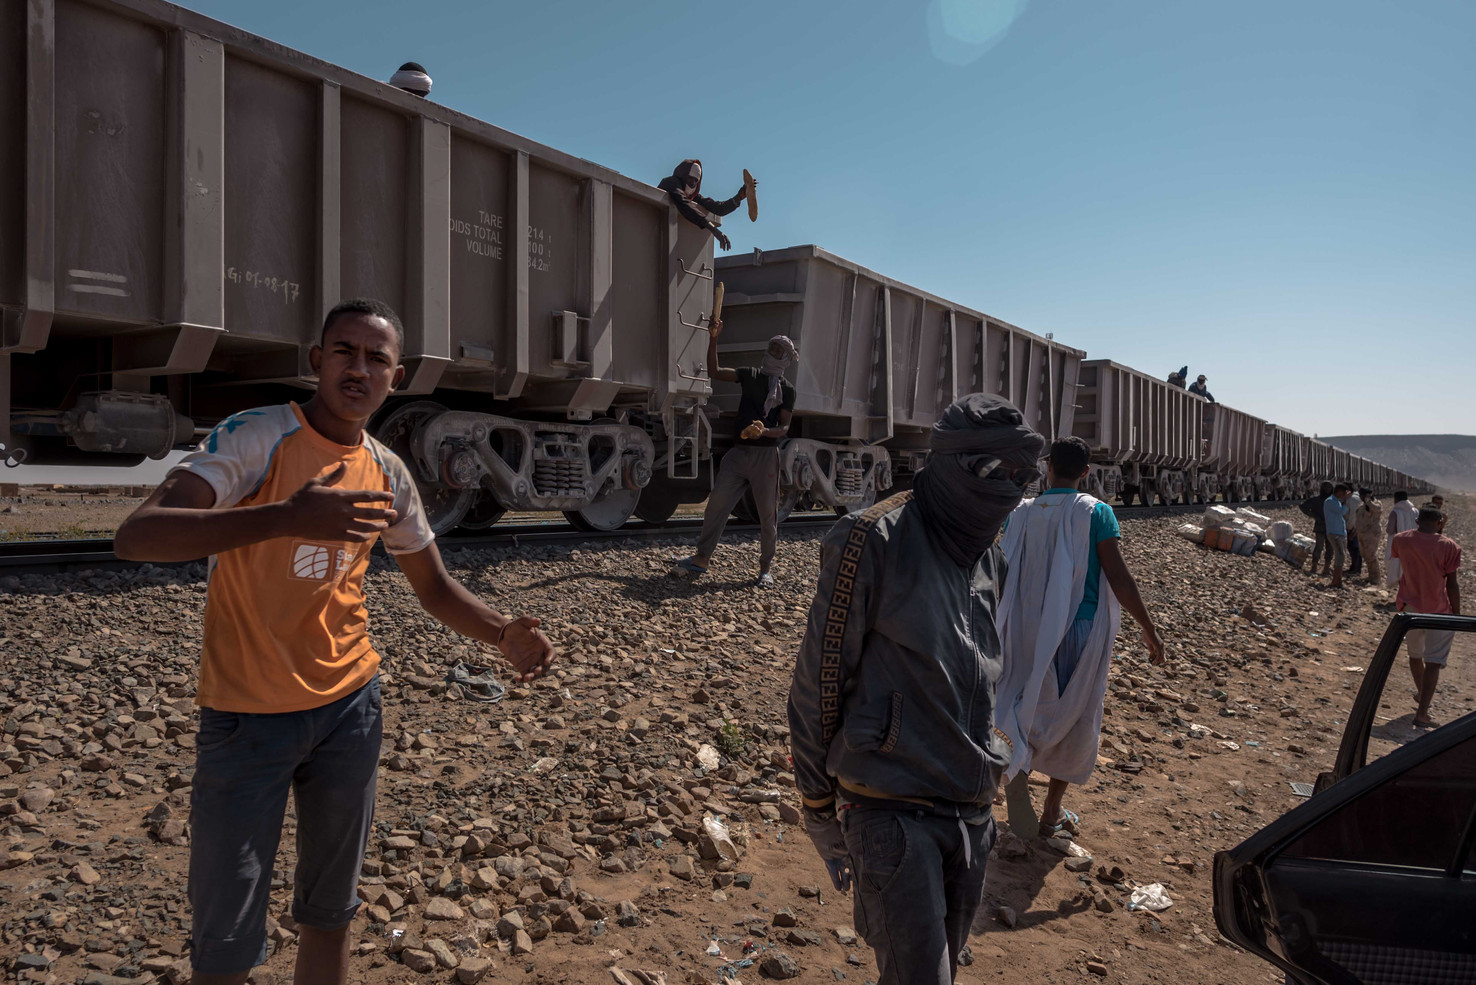 After 14 hours, the train makes a stop at a tiny village called Choum. Everybody scrams to toss their luggage over the side before the train continues toward the mines.